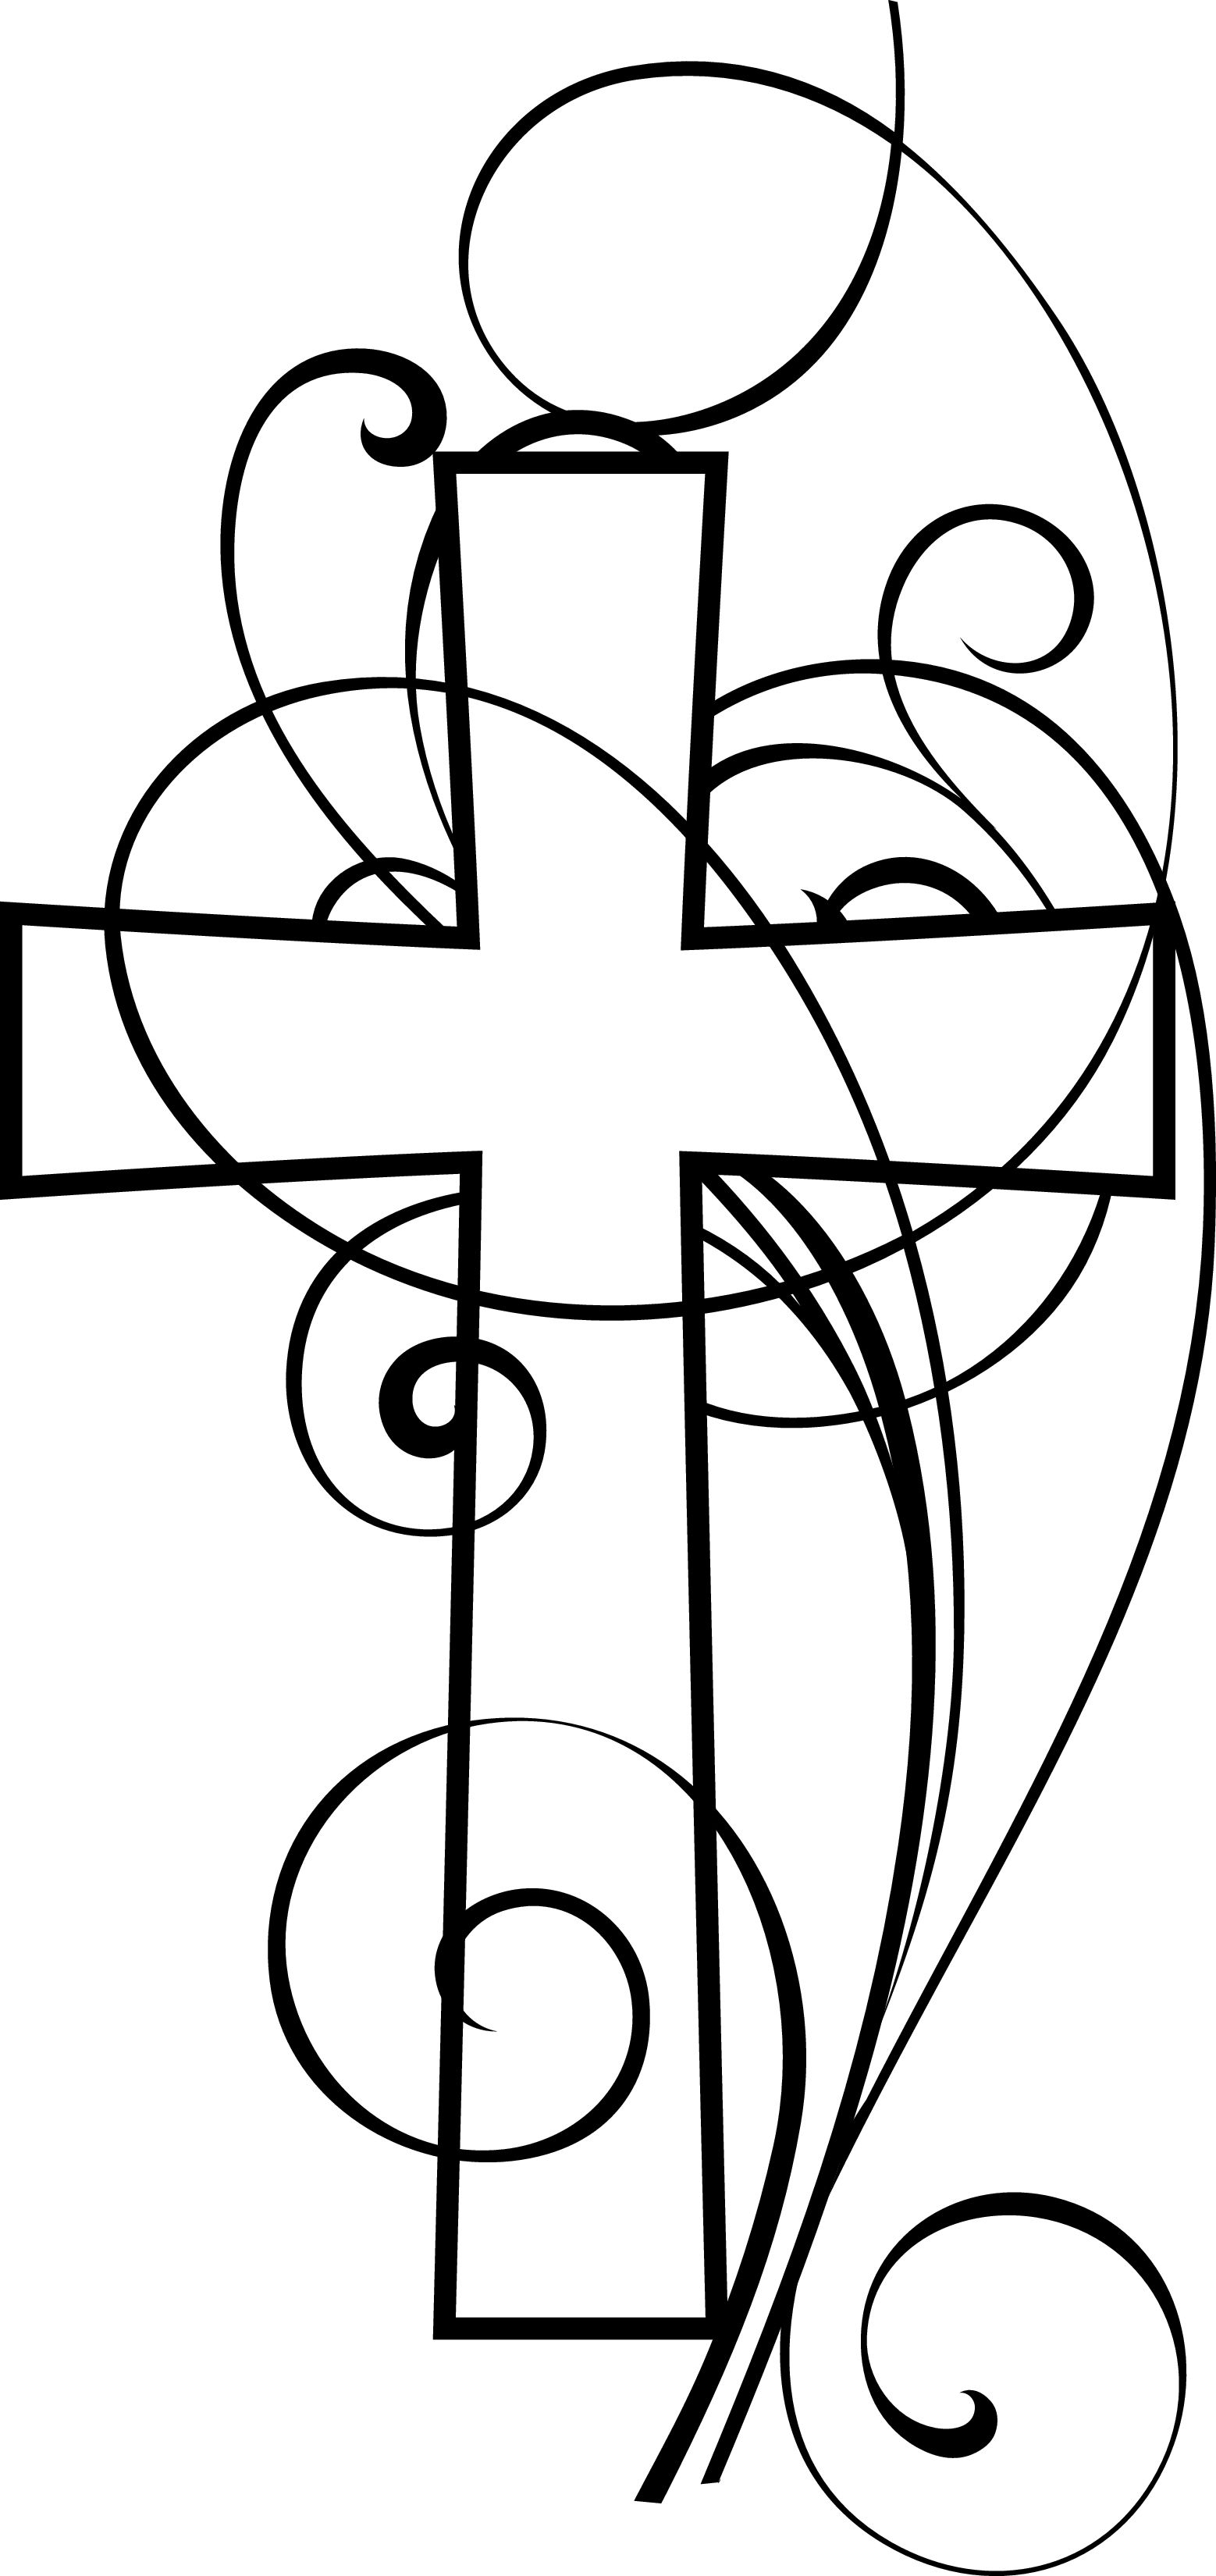 Cross google search bible. Free christian clipart and images